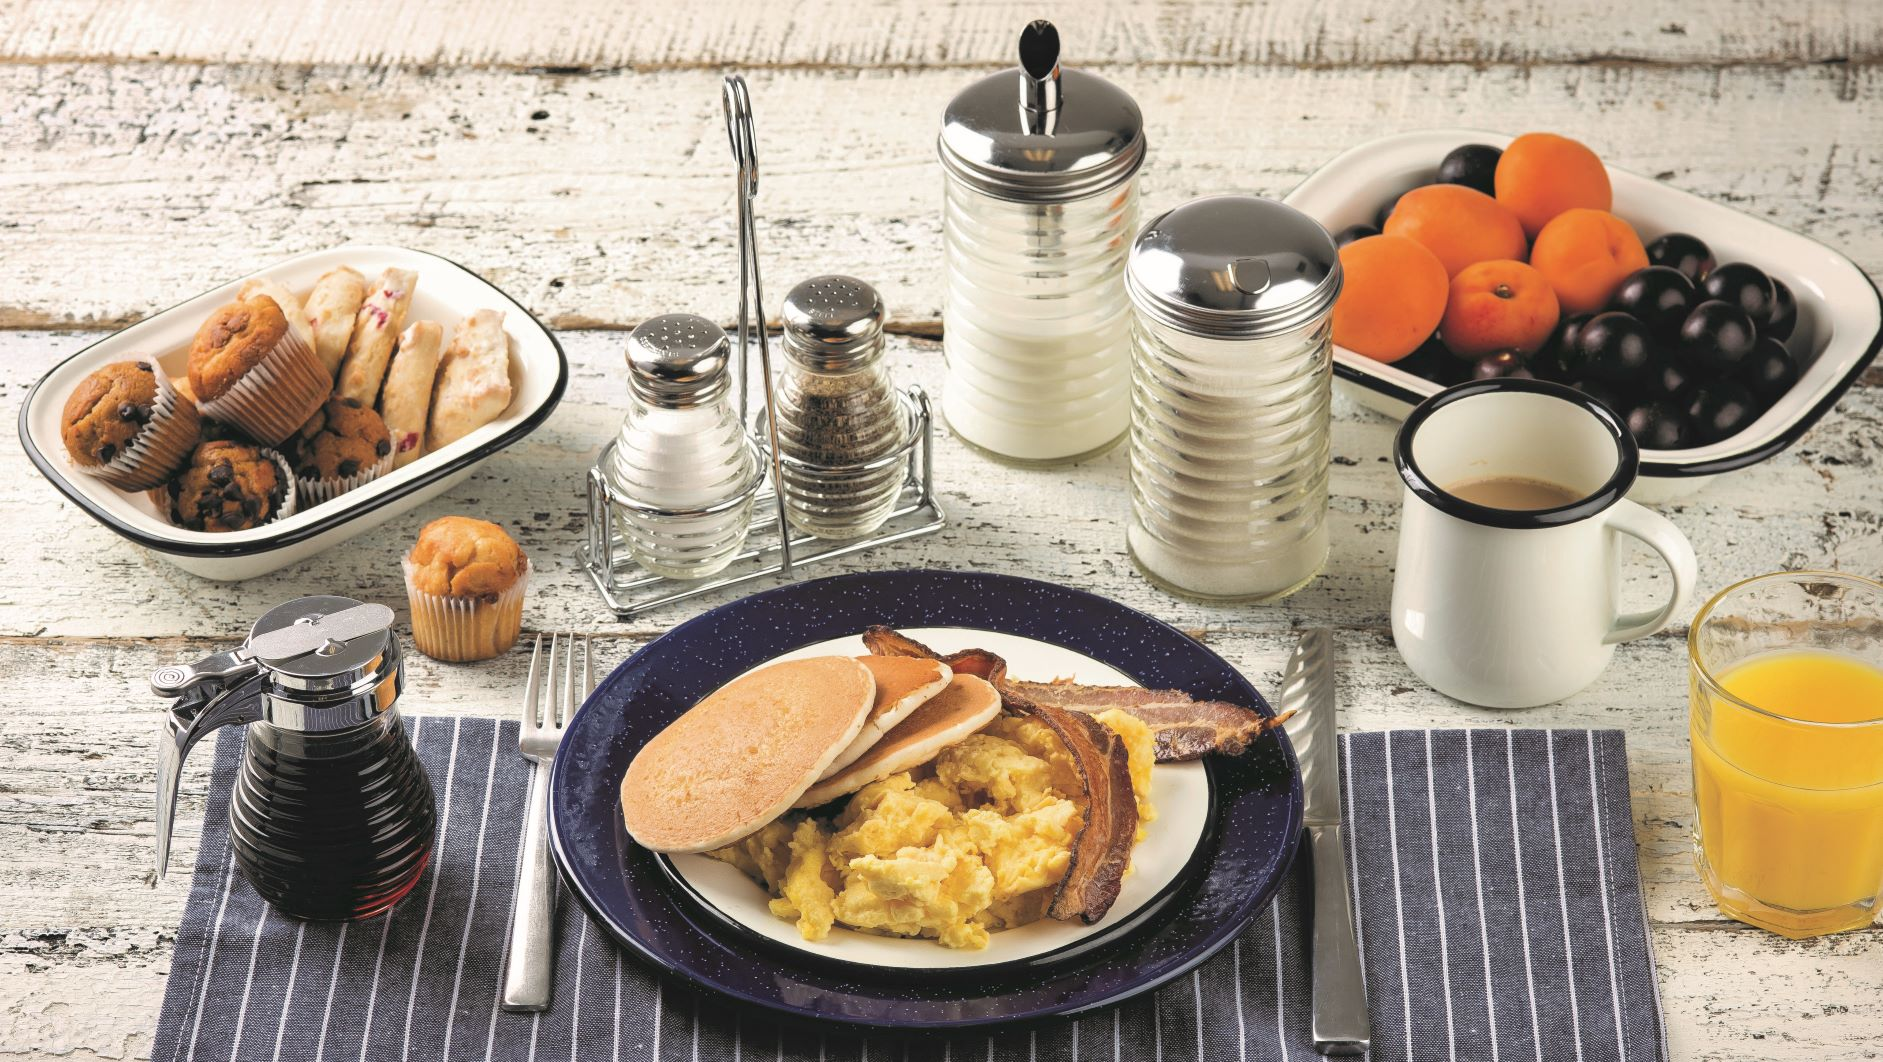 Enamelware Meal with creamy white and blue dishes